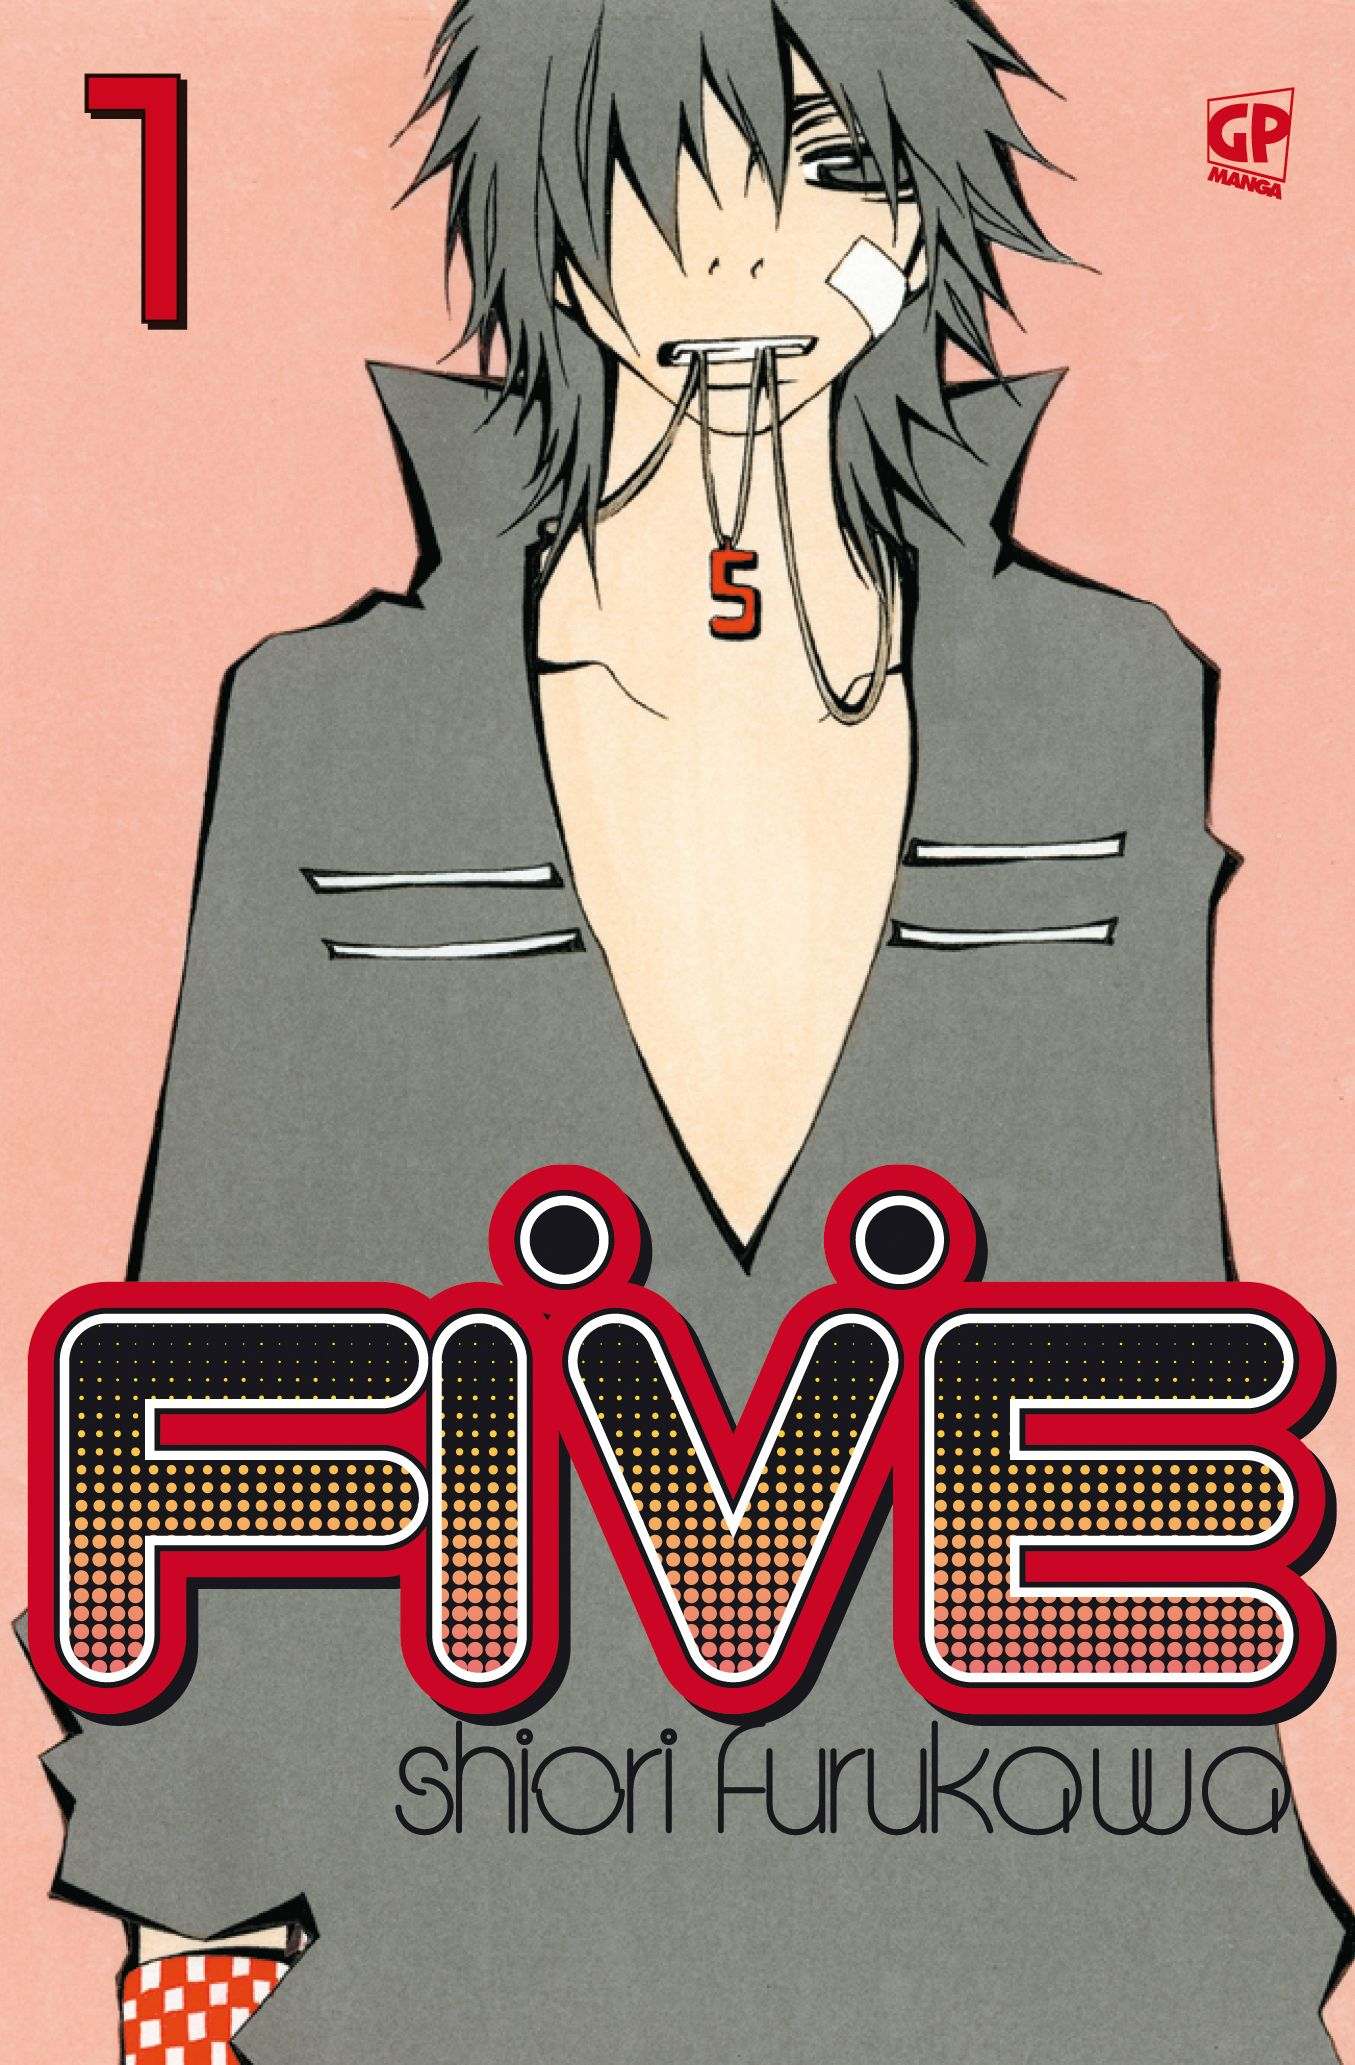 five vol. 1 shiori furikawa gp publishing